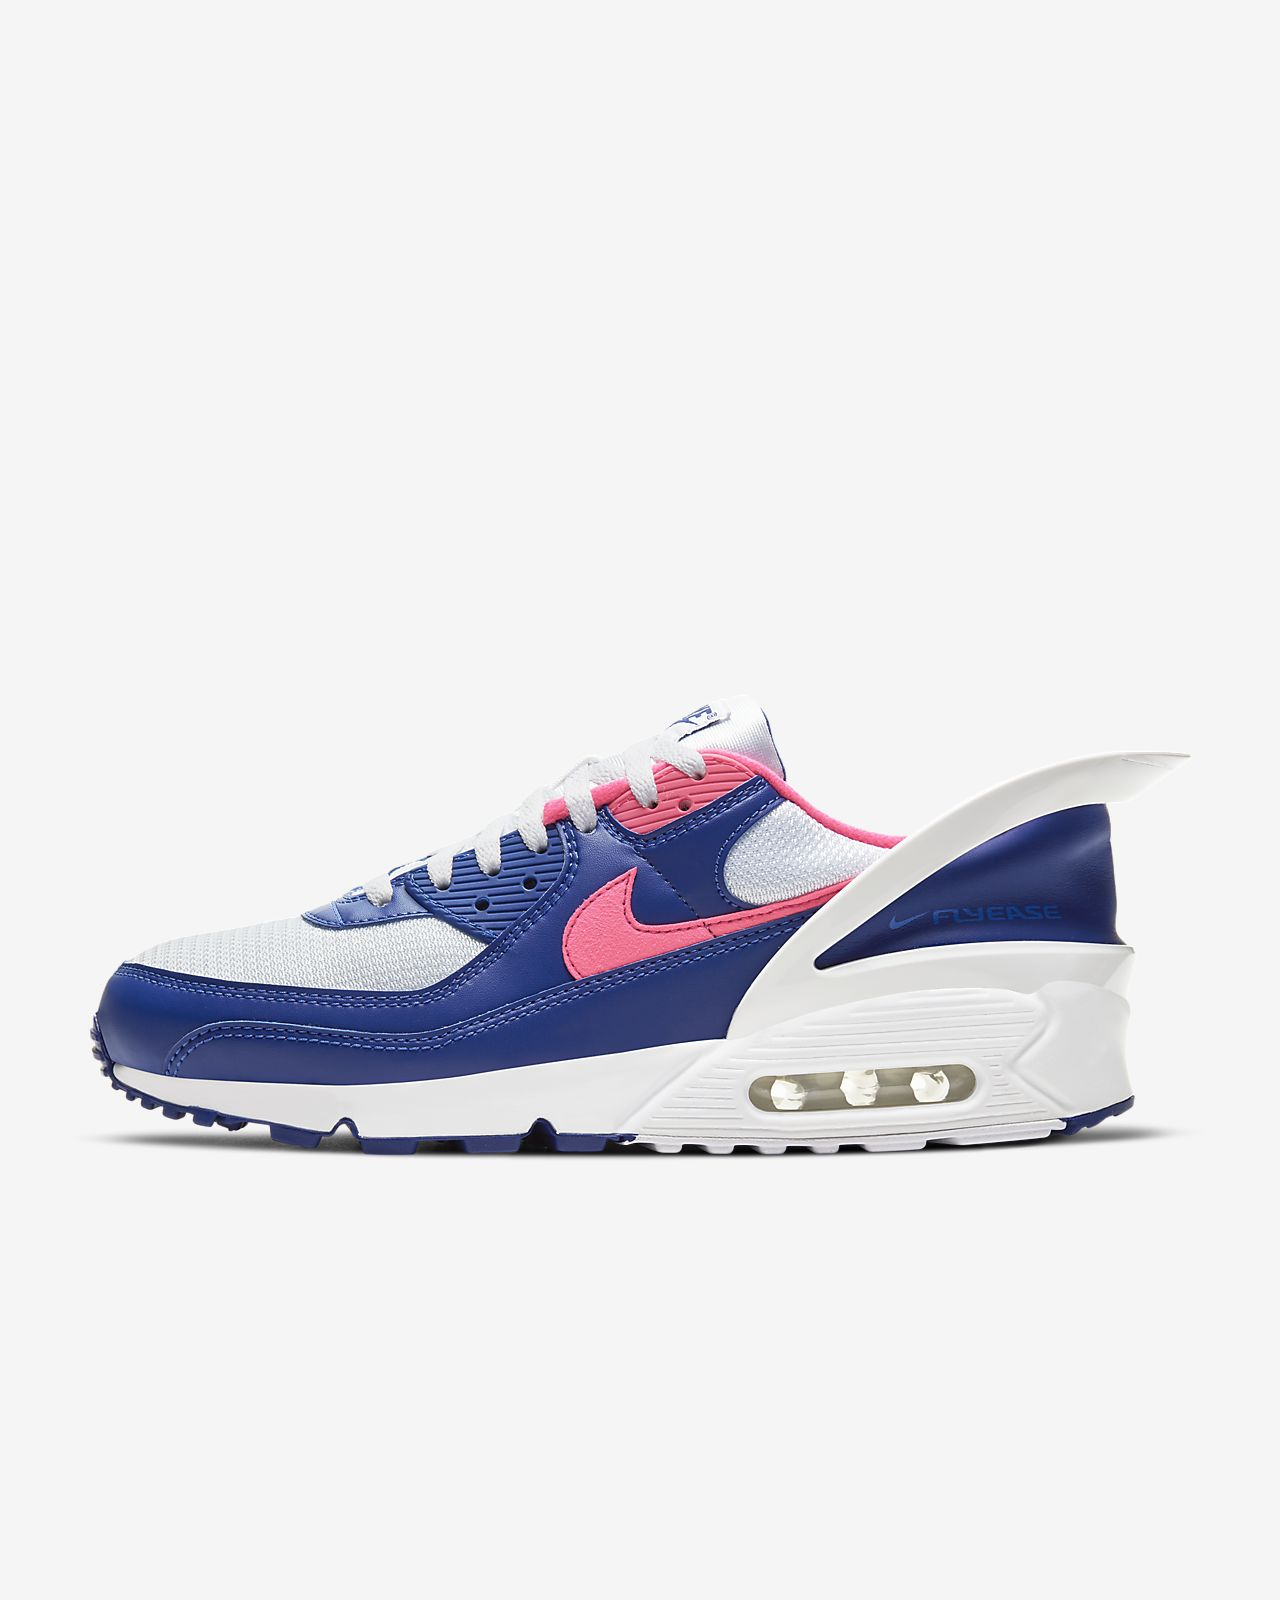 Shop From The Largest Selection: Nike Nike Air Max Lunar 90